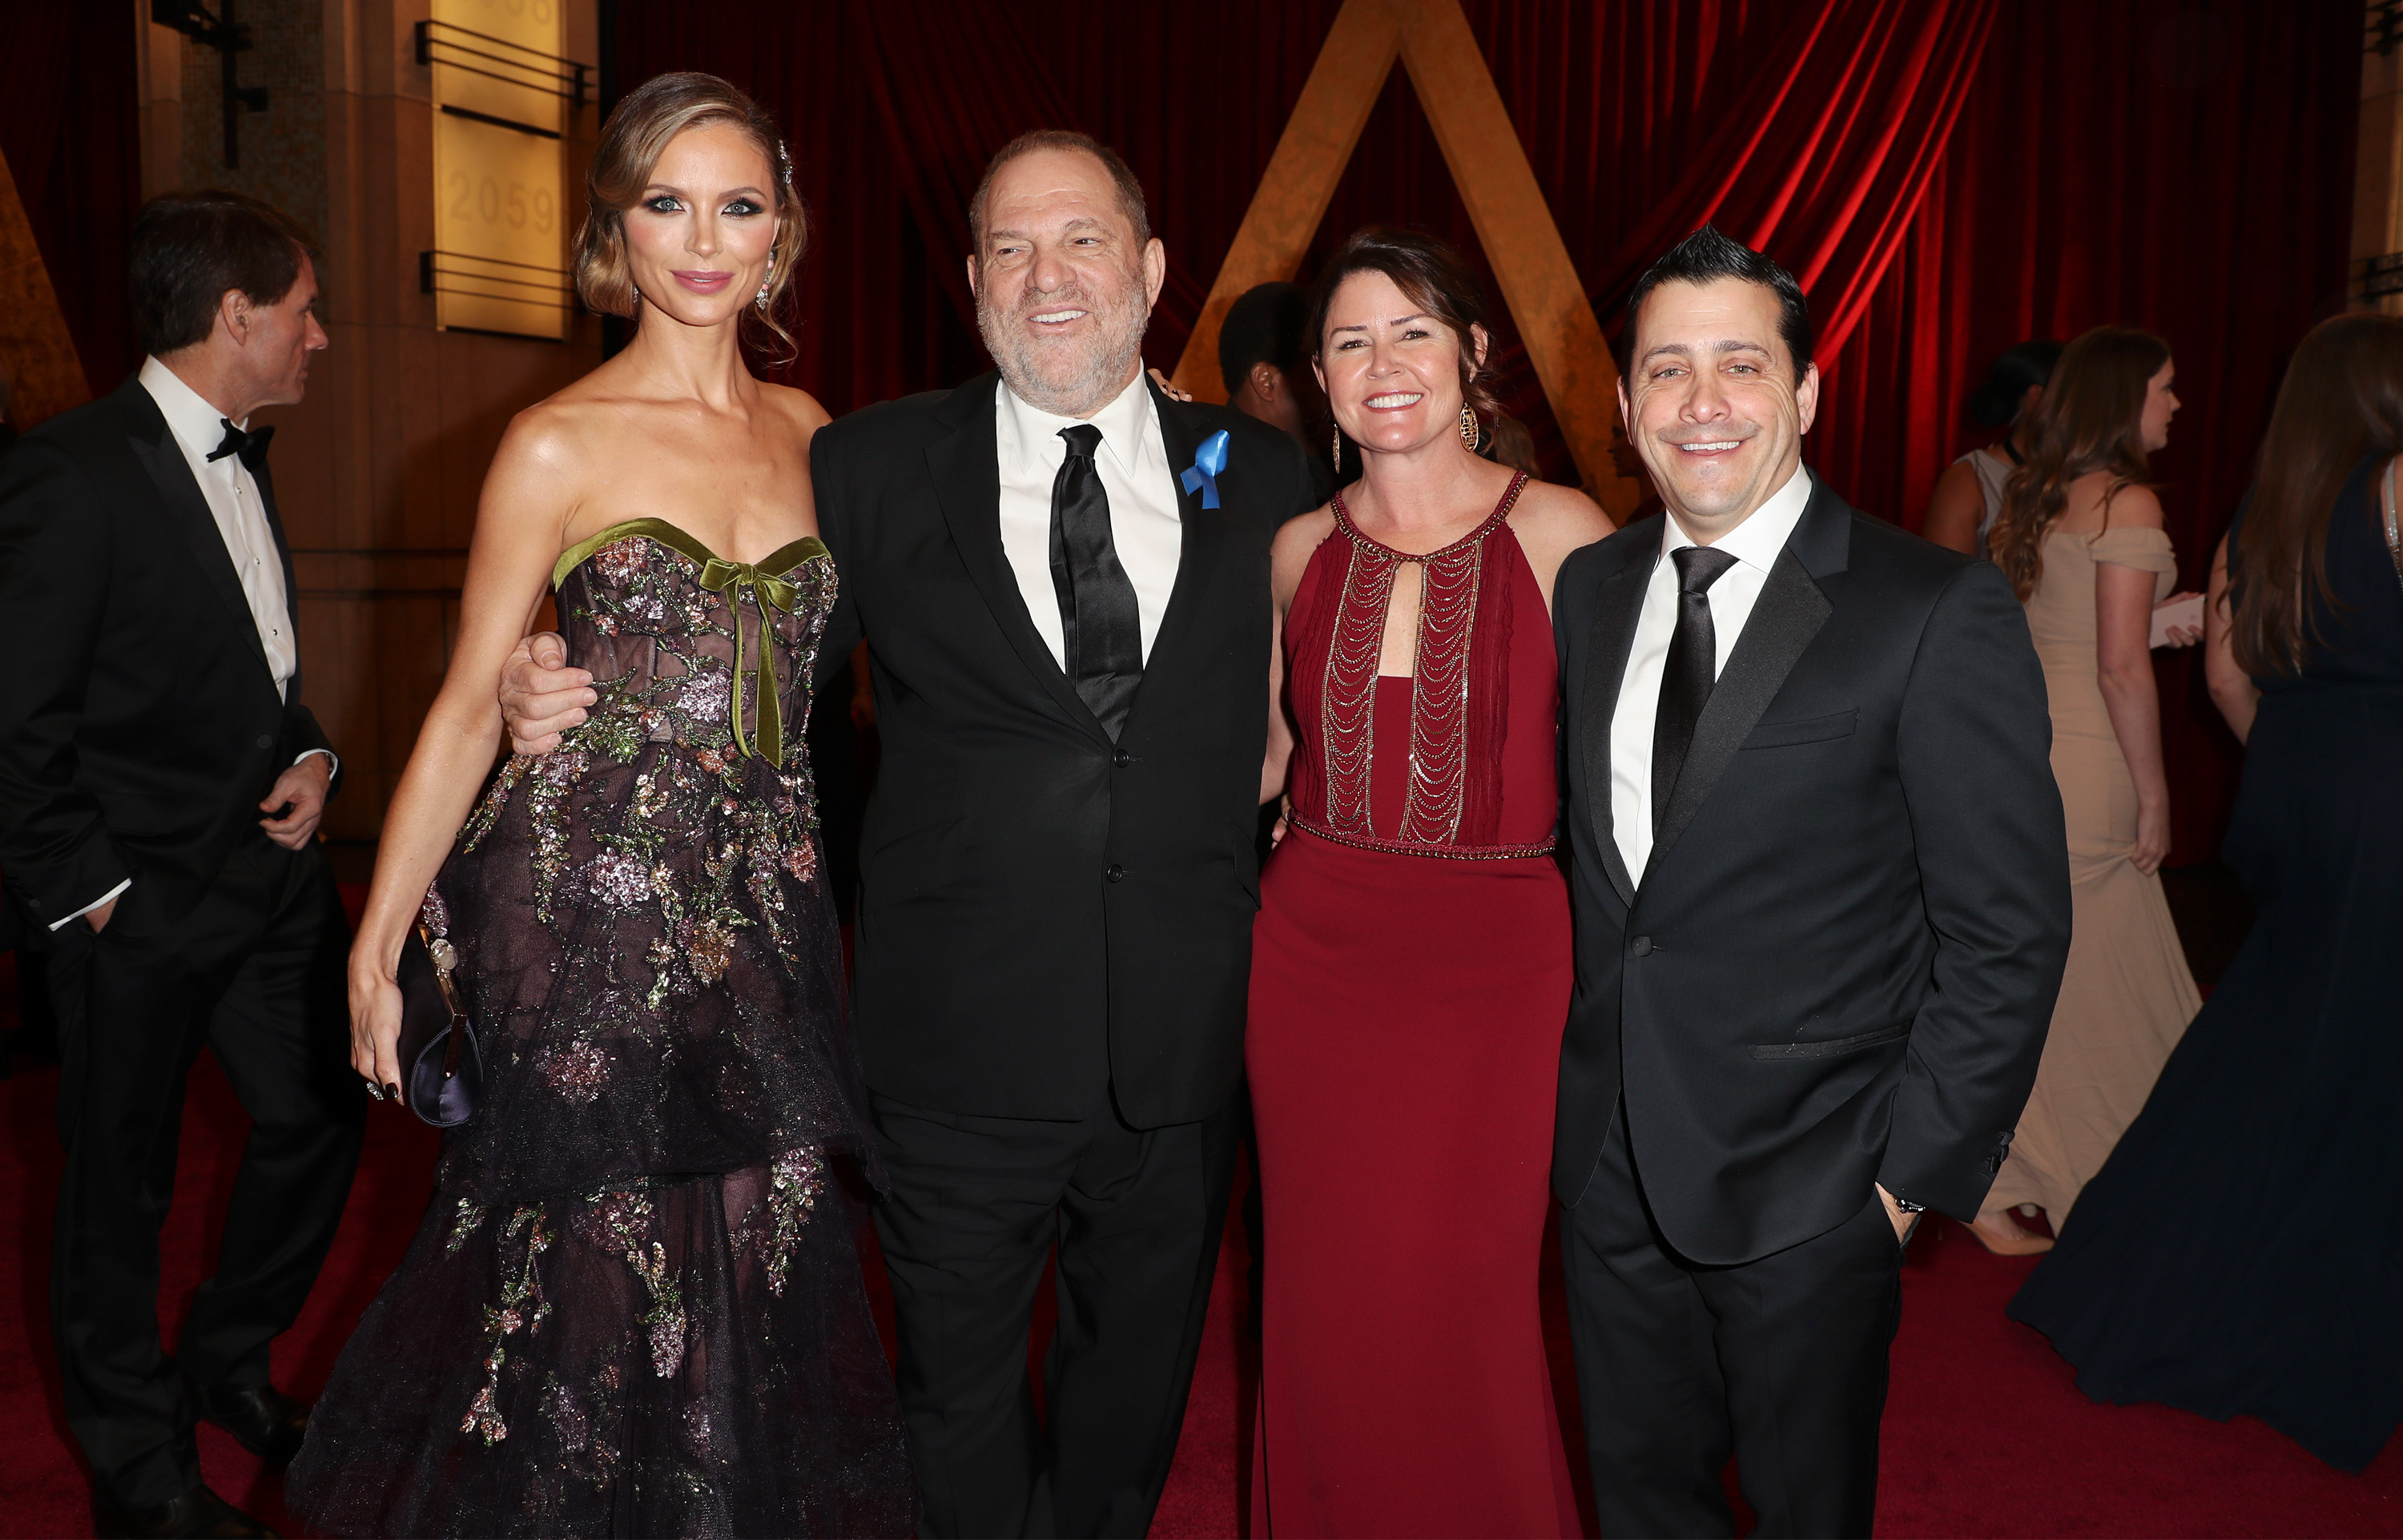 Georgina Chapman, Harvey Weinstein, Michele Glasser and David Glasser89th Annual Academy Awards, Executive Arrivals, Los Angeles, USA - 26 Feb 2017